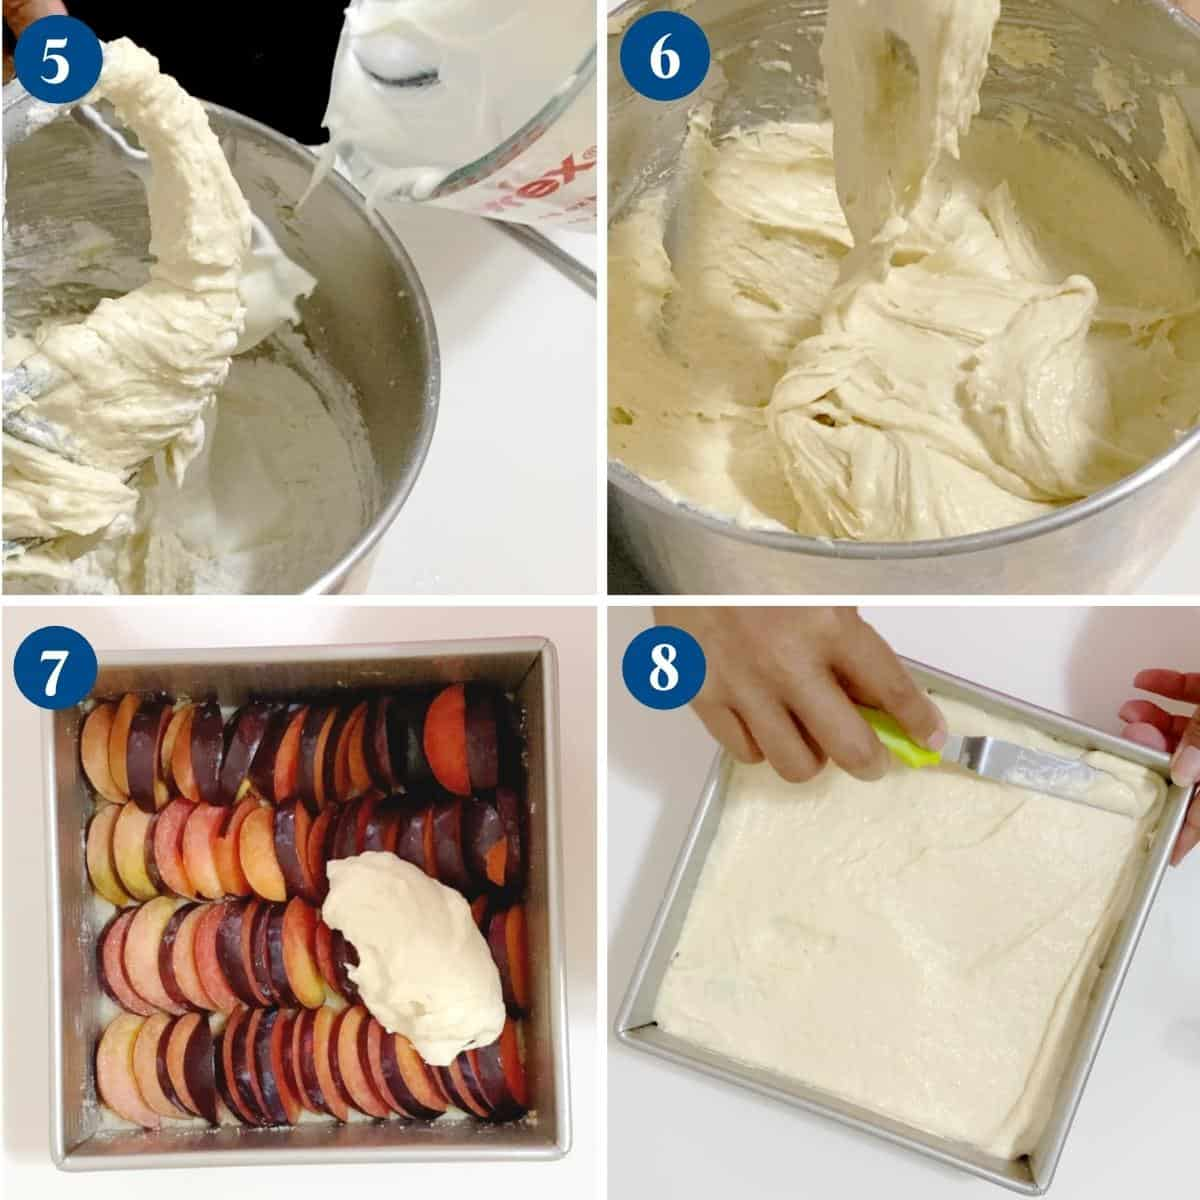 Progress pictures collage topping the cake batter over the sliced plums.